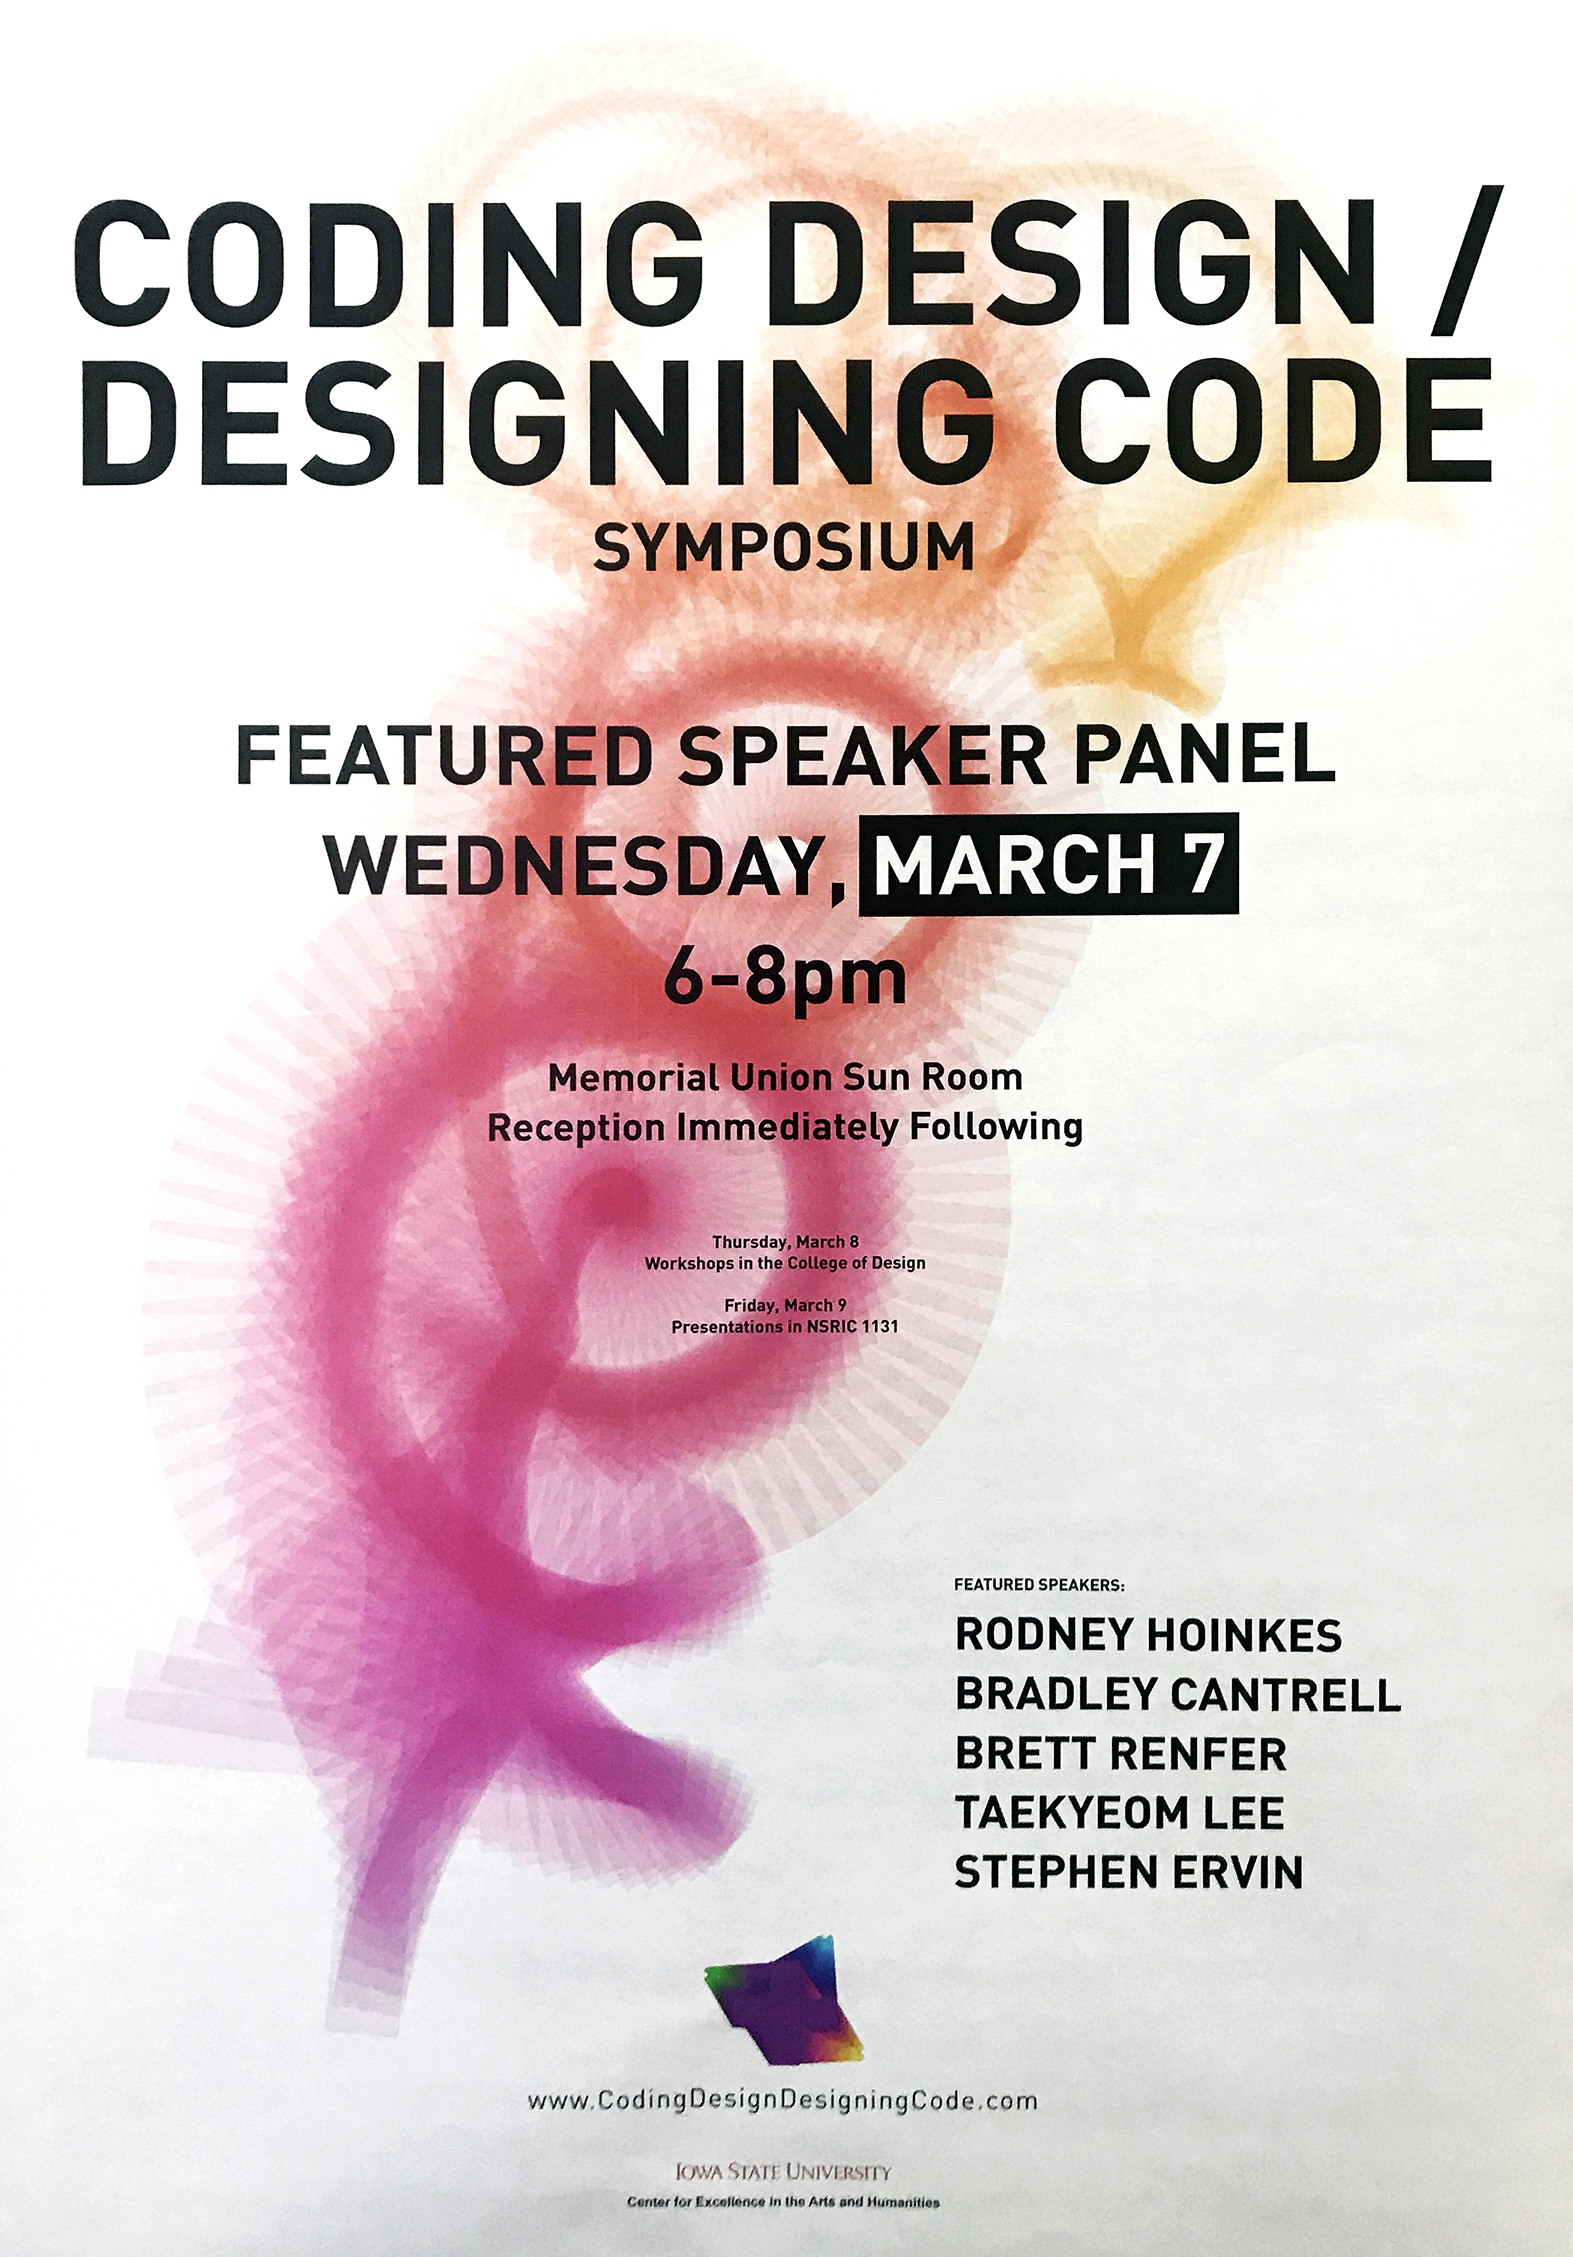 Coding Design Symposium